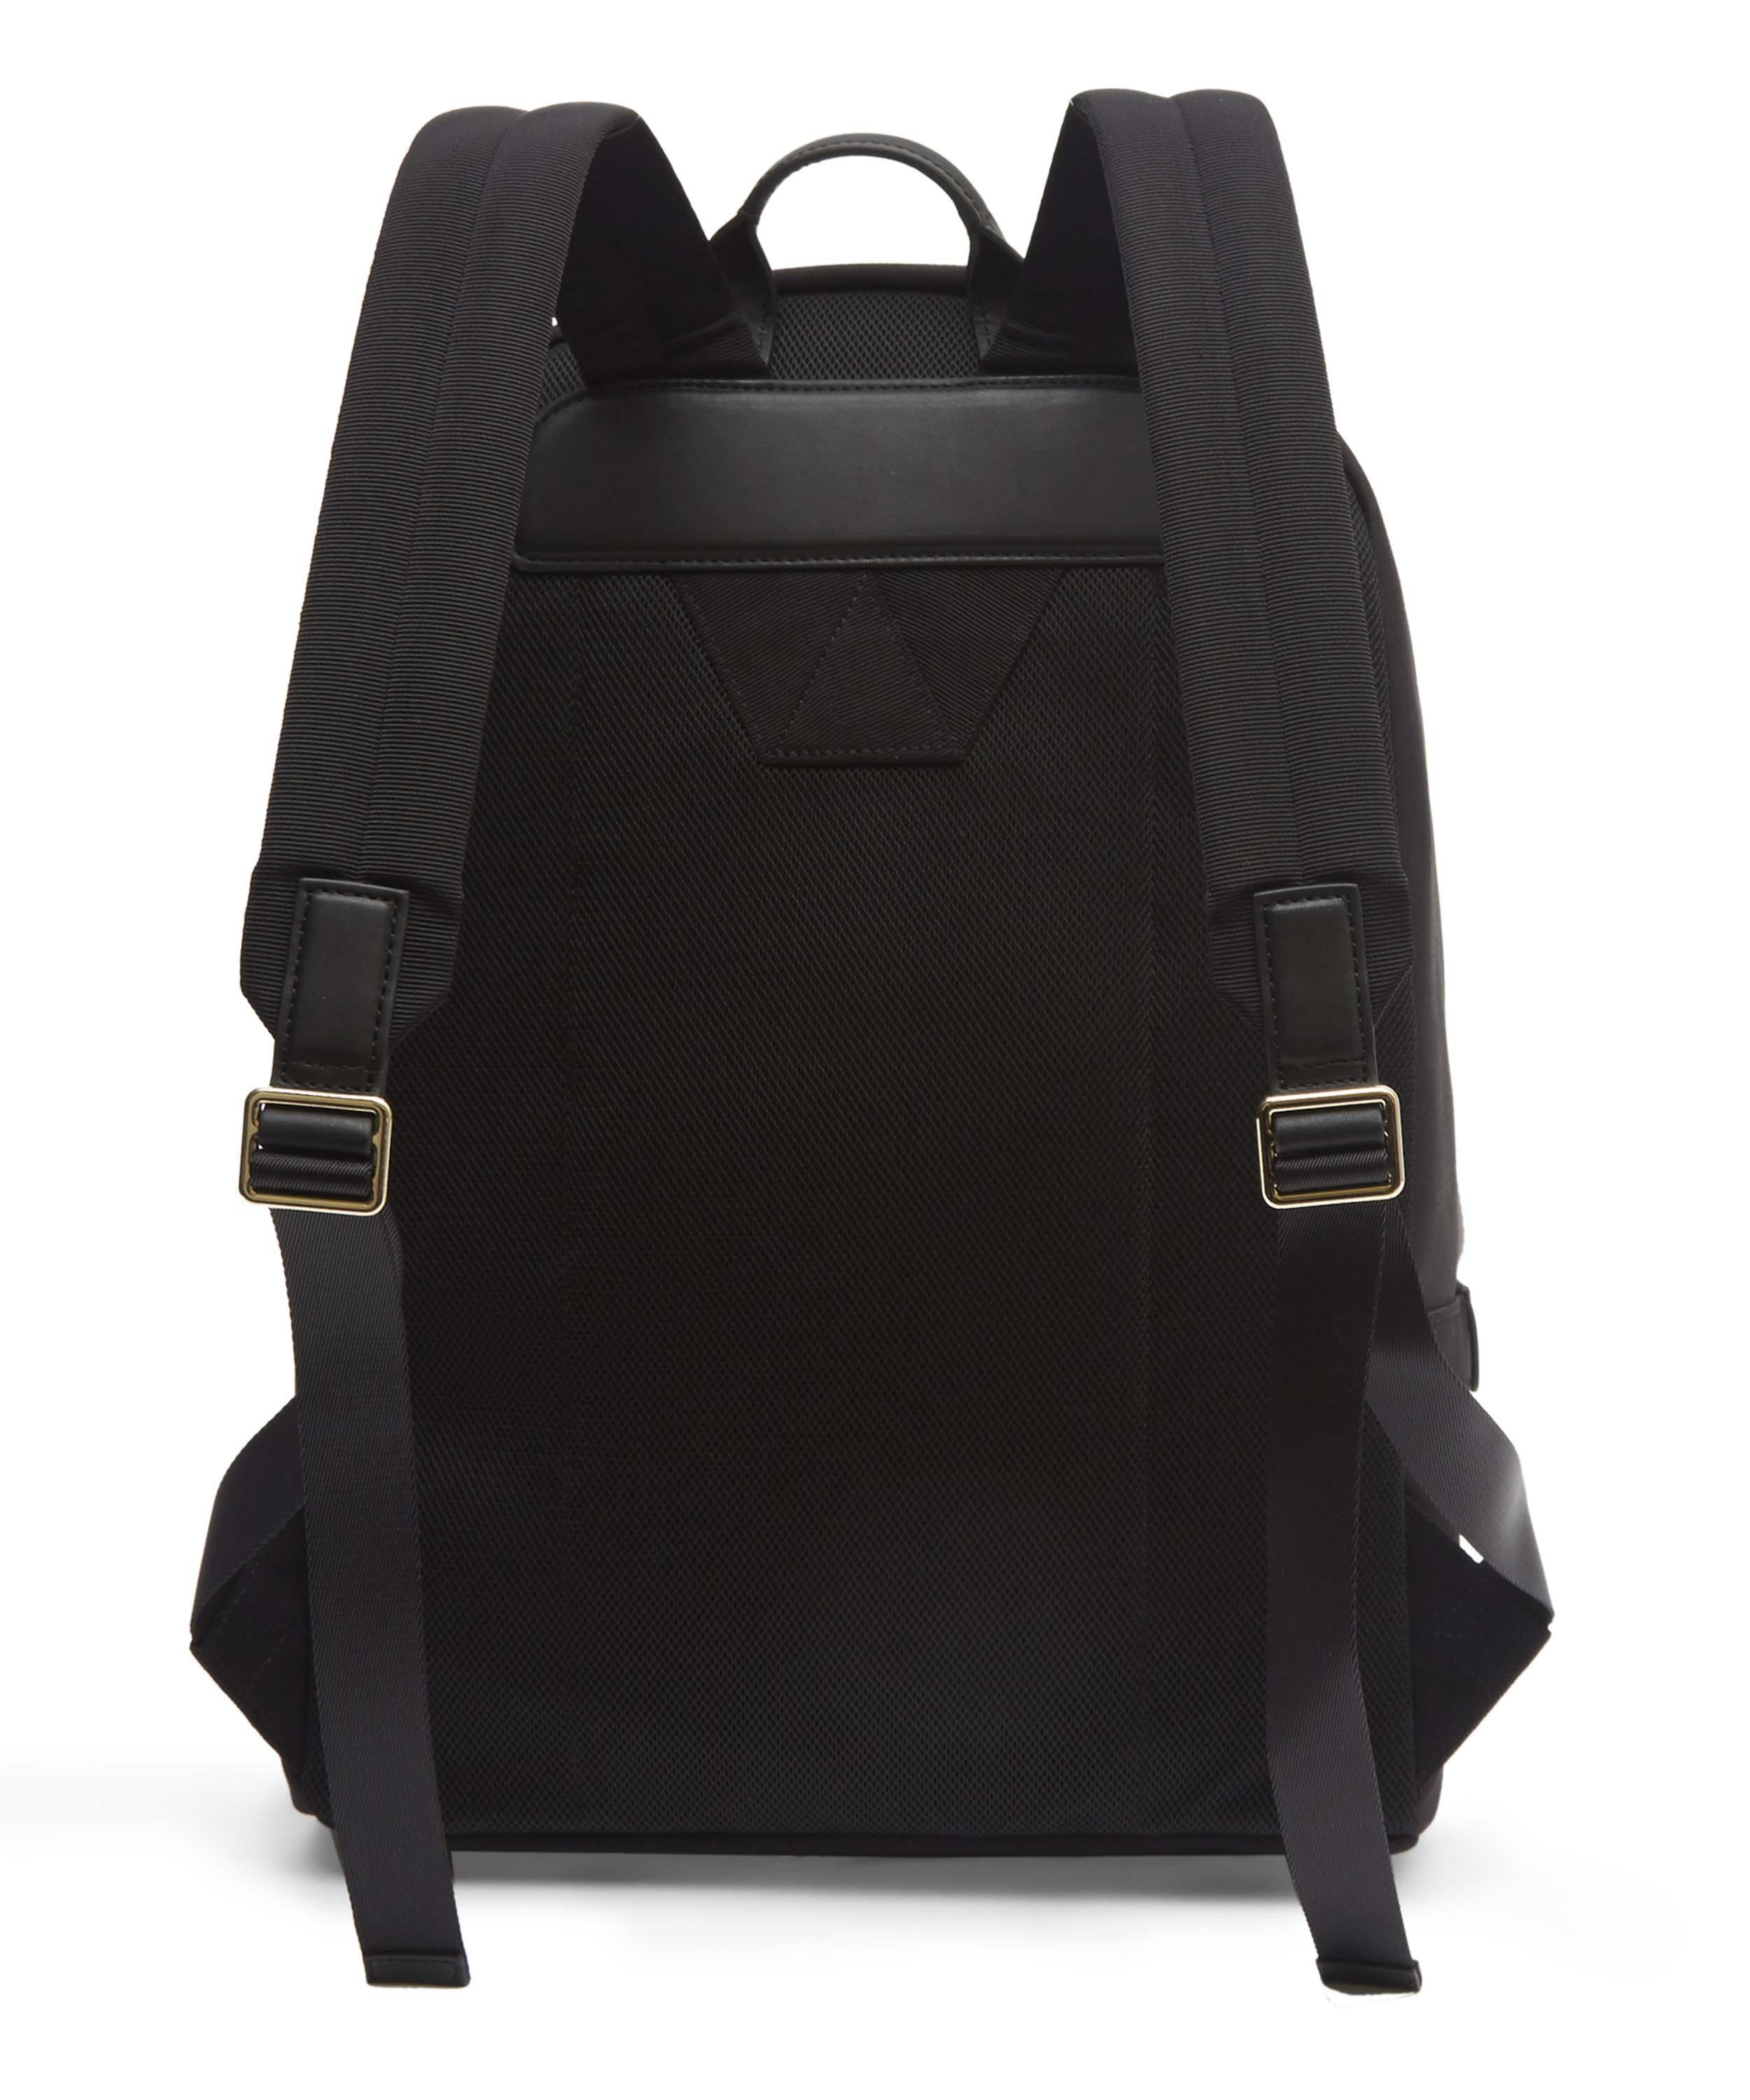 Paul Smith Feather Backpack in Black for Men - Lyst 9712163bc